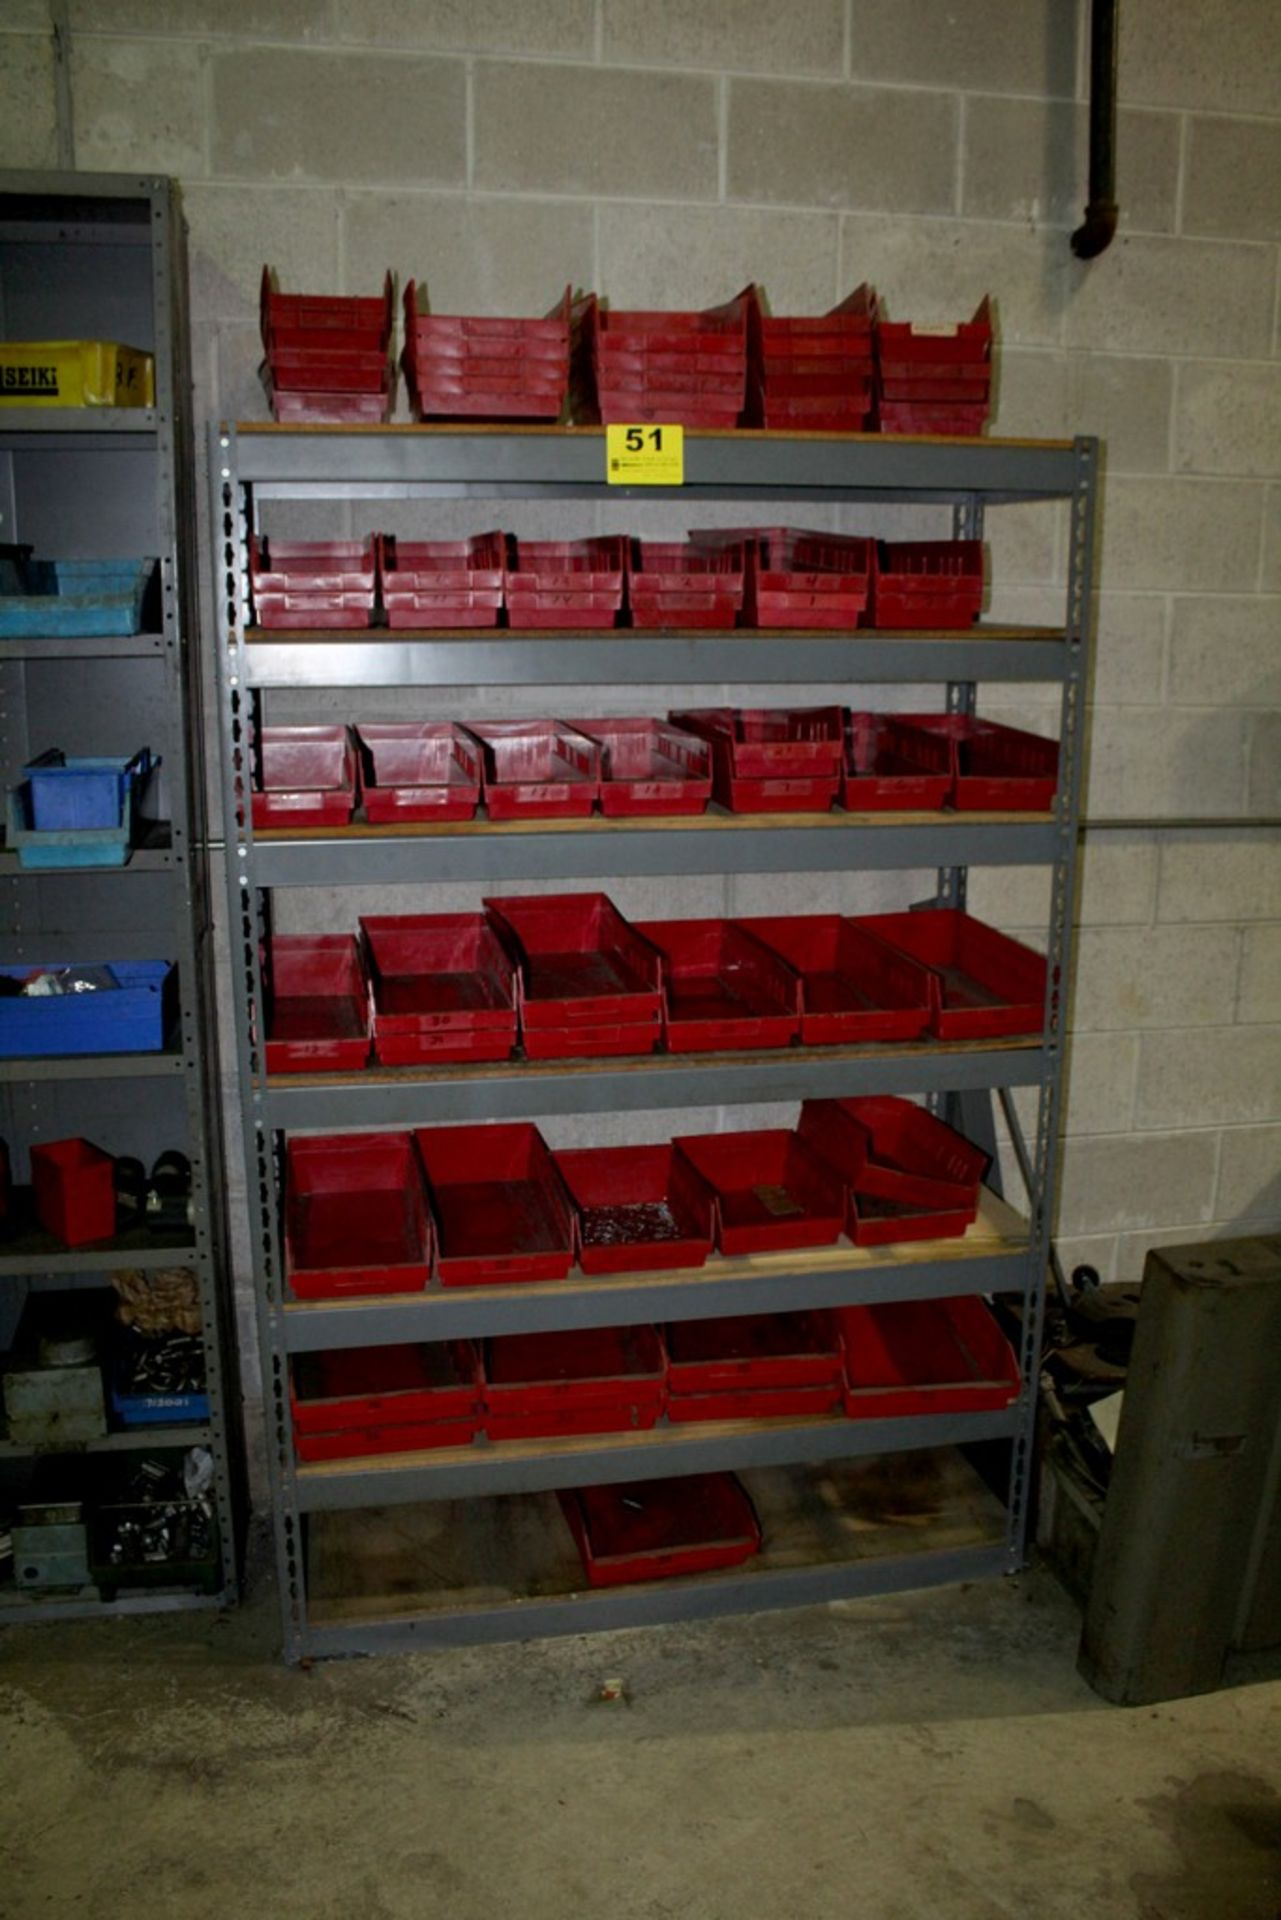 "Lot 51 - 48"" X 19"" X 72"" ADJUSTABLE STEEL SHELVING WITH BINS"